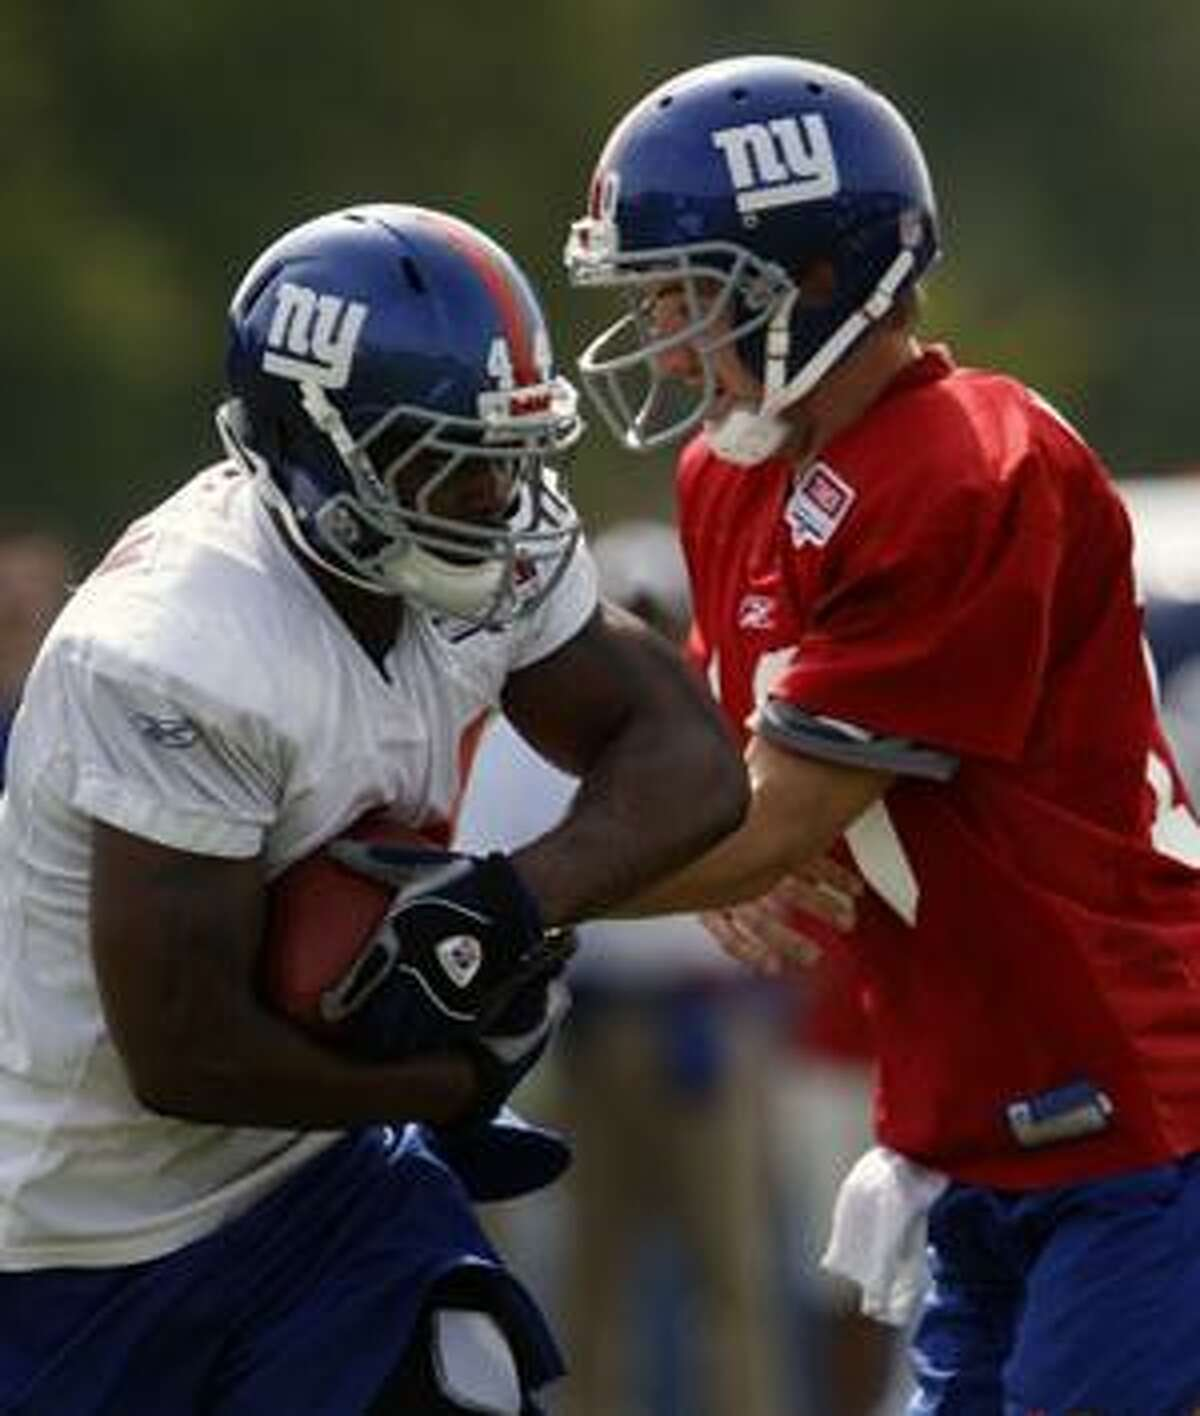 New York Giants running back Ahmad Bradshaw (44) takes a handoff from quarterback Eli Manning during training camp in Albany, N.Y., Wednesday.